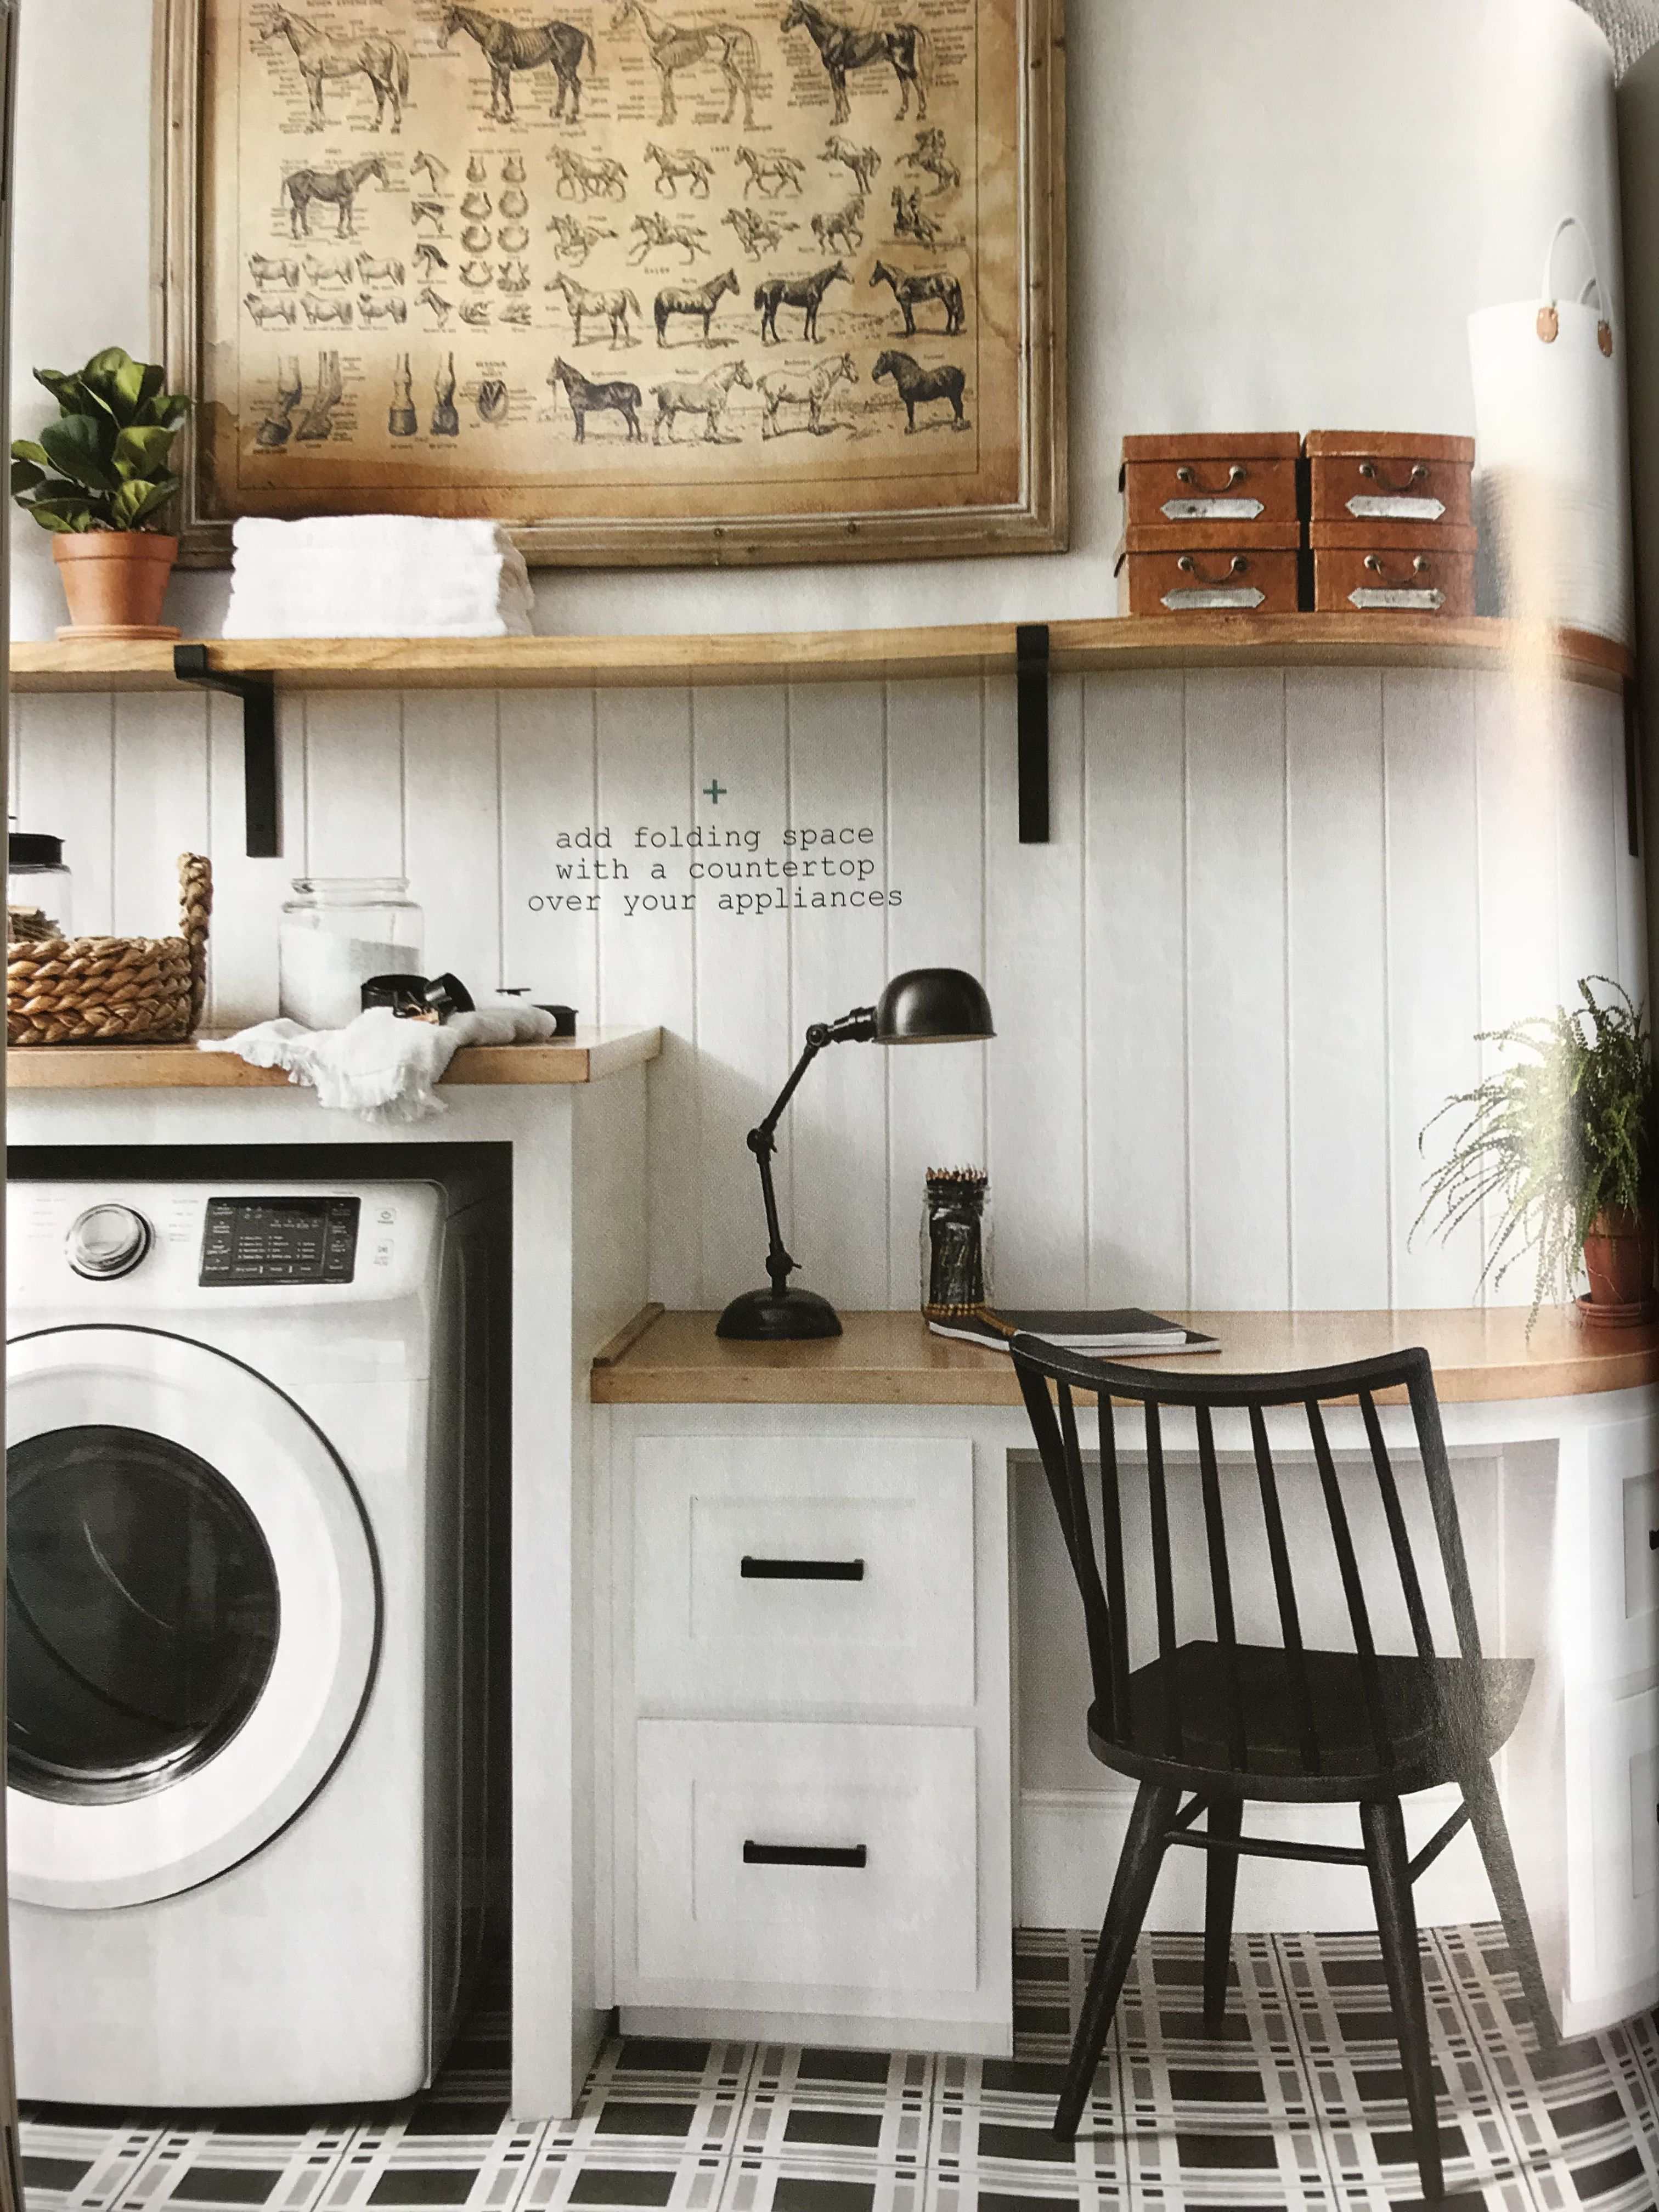 Magnolia Journal laundry room, wide bead board with a shelf